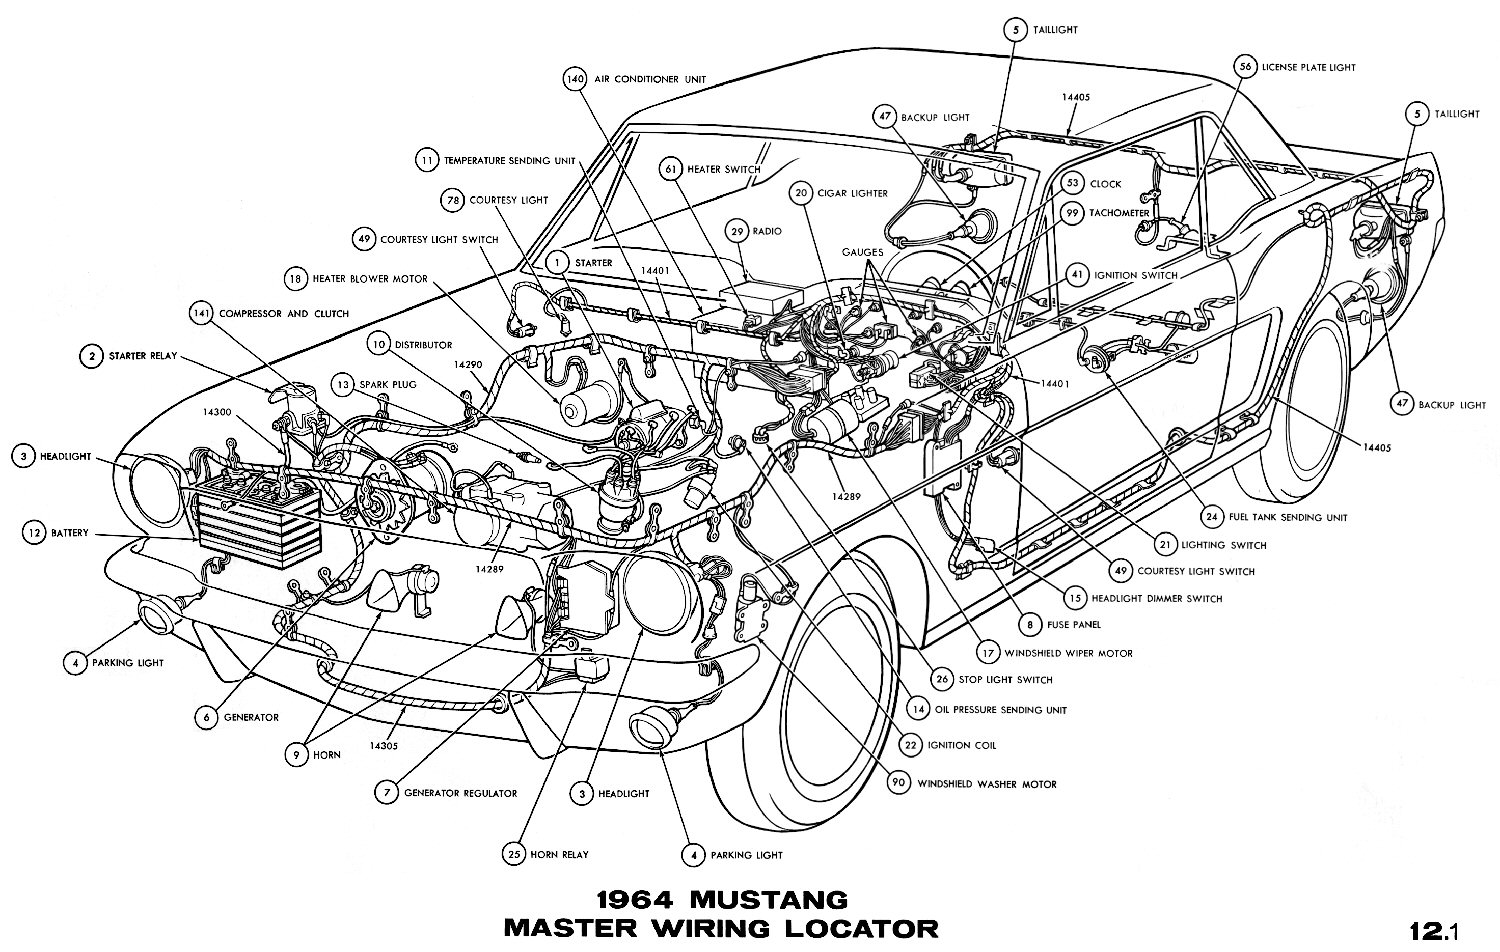 hight resolution of 67 mustang engine diagram wiring diagrams67 mustang v8 engine diagram box wiring diagram mustang part diagram